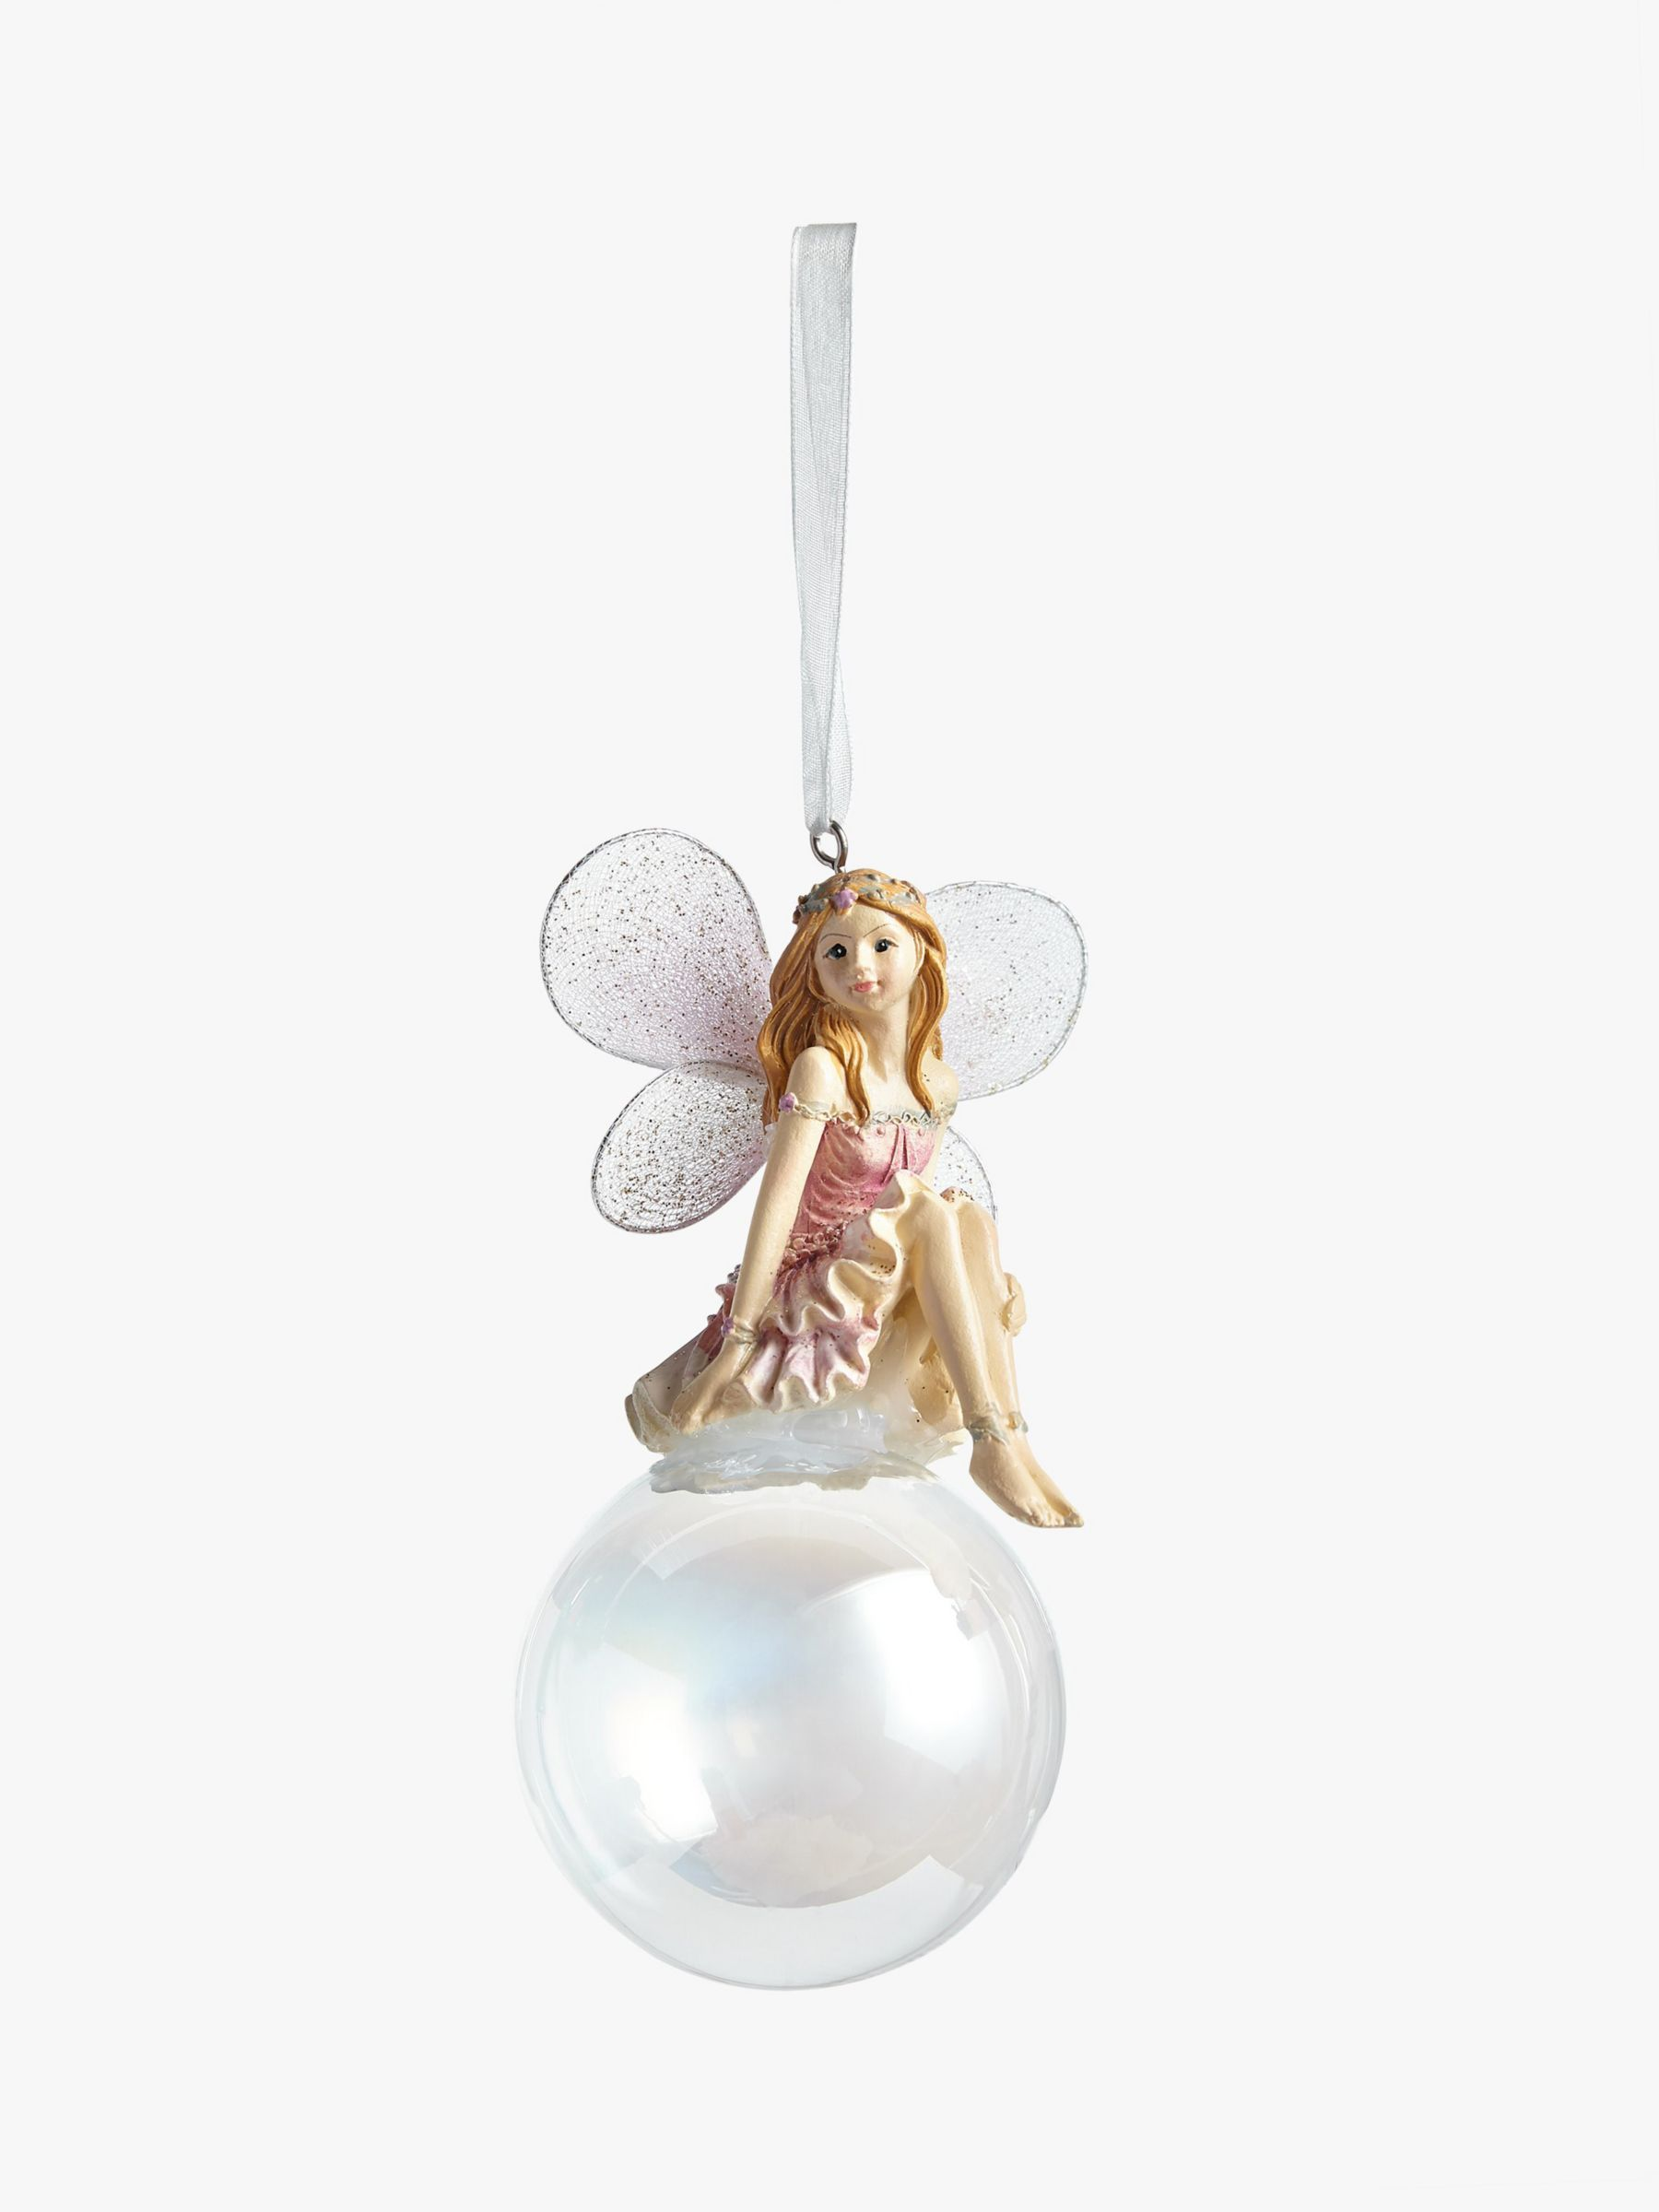 Buy John Lewis & Partners Sanctuary Bubble Fairy Tree Decoration, Pink Online at johnlewis.com Buy John Lewis & Partners Sanctuary Bubble Fairy Tree Decoration, Pink Online at johnlewis.com Buy John Lewis & Partners Sanctuary Bubble Fairy Tree Decoration, Pink Online at johnlewis.com John Lewis & Partners Sanctuary Bubble Fairy Tree Decoration